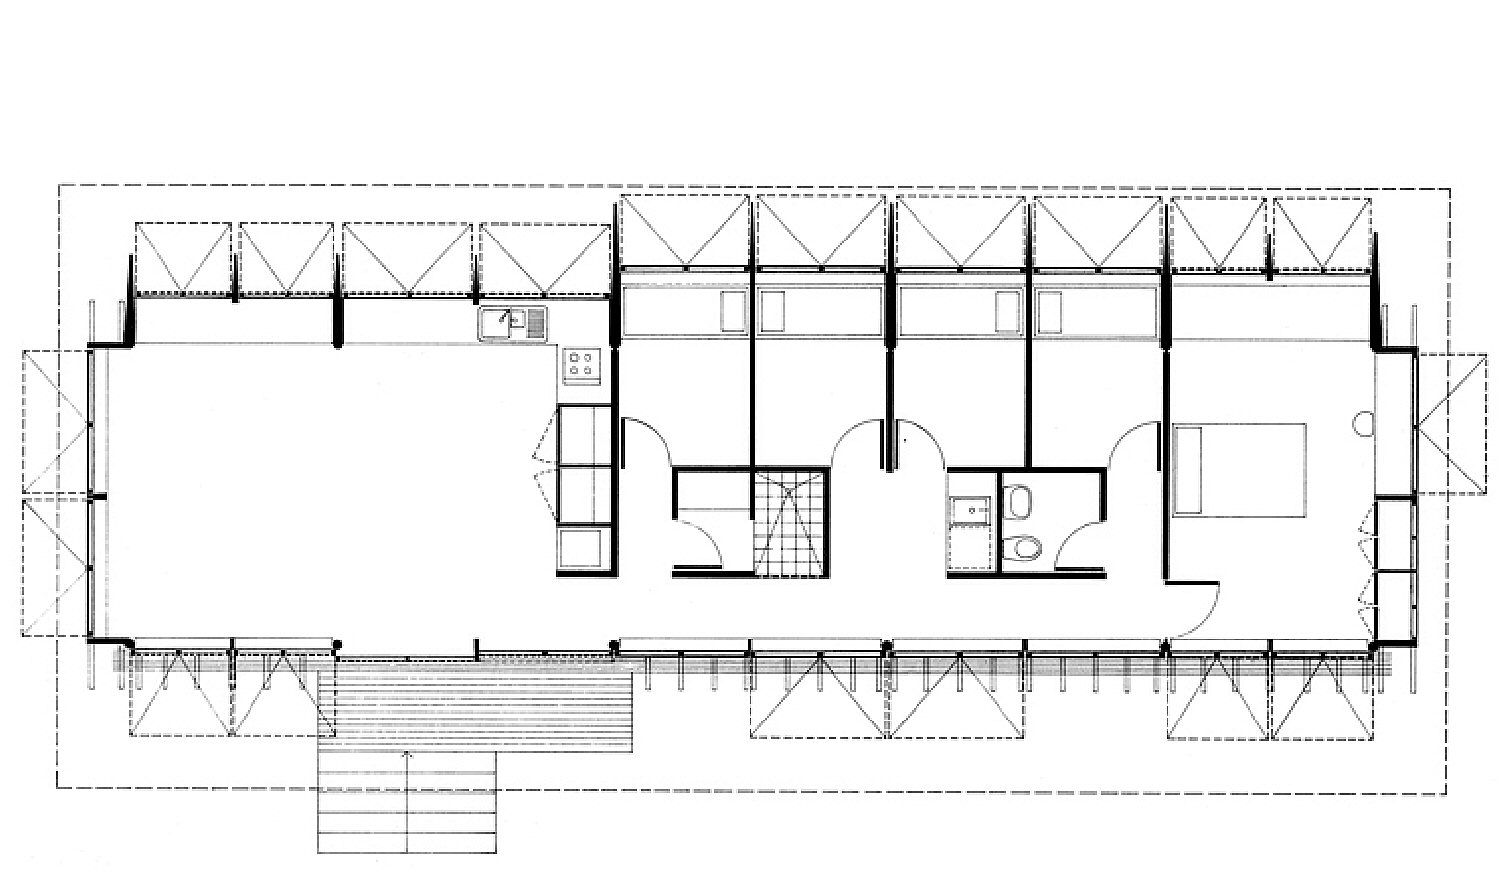 floor plan, horizontal orientation, rectangular, large space on left takes up about 1/3 of total floor space with 5 smaller rooms off a hallways making up the rest